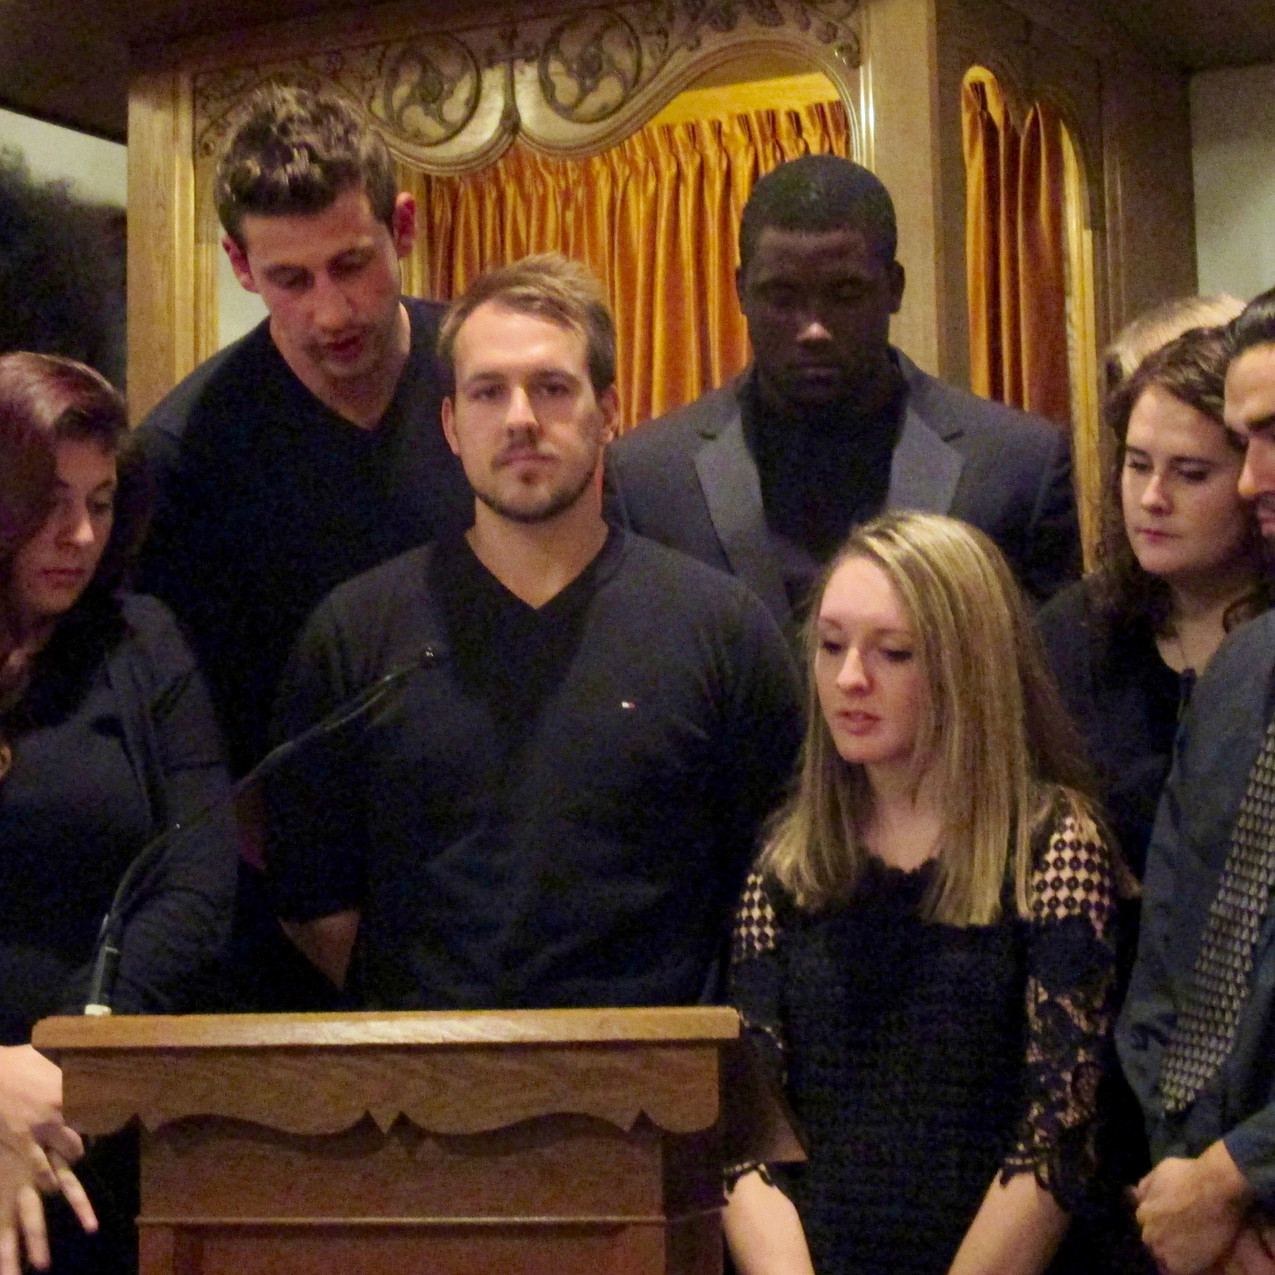 Students presented five dramatic readings during the concert, held in the Olivet Congregational Church.